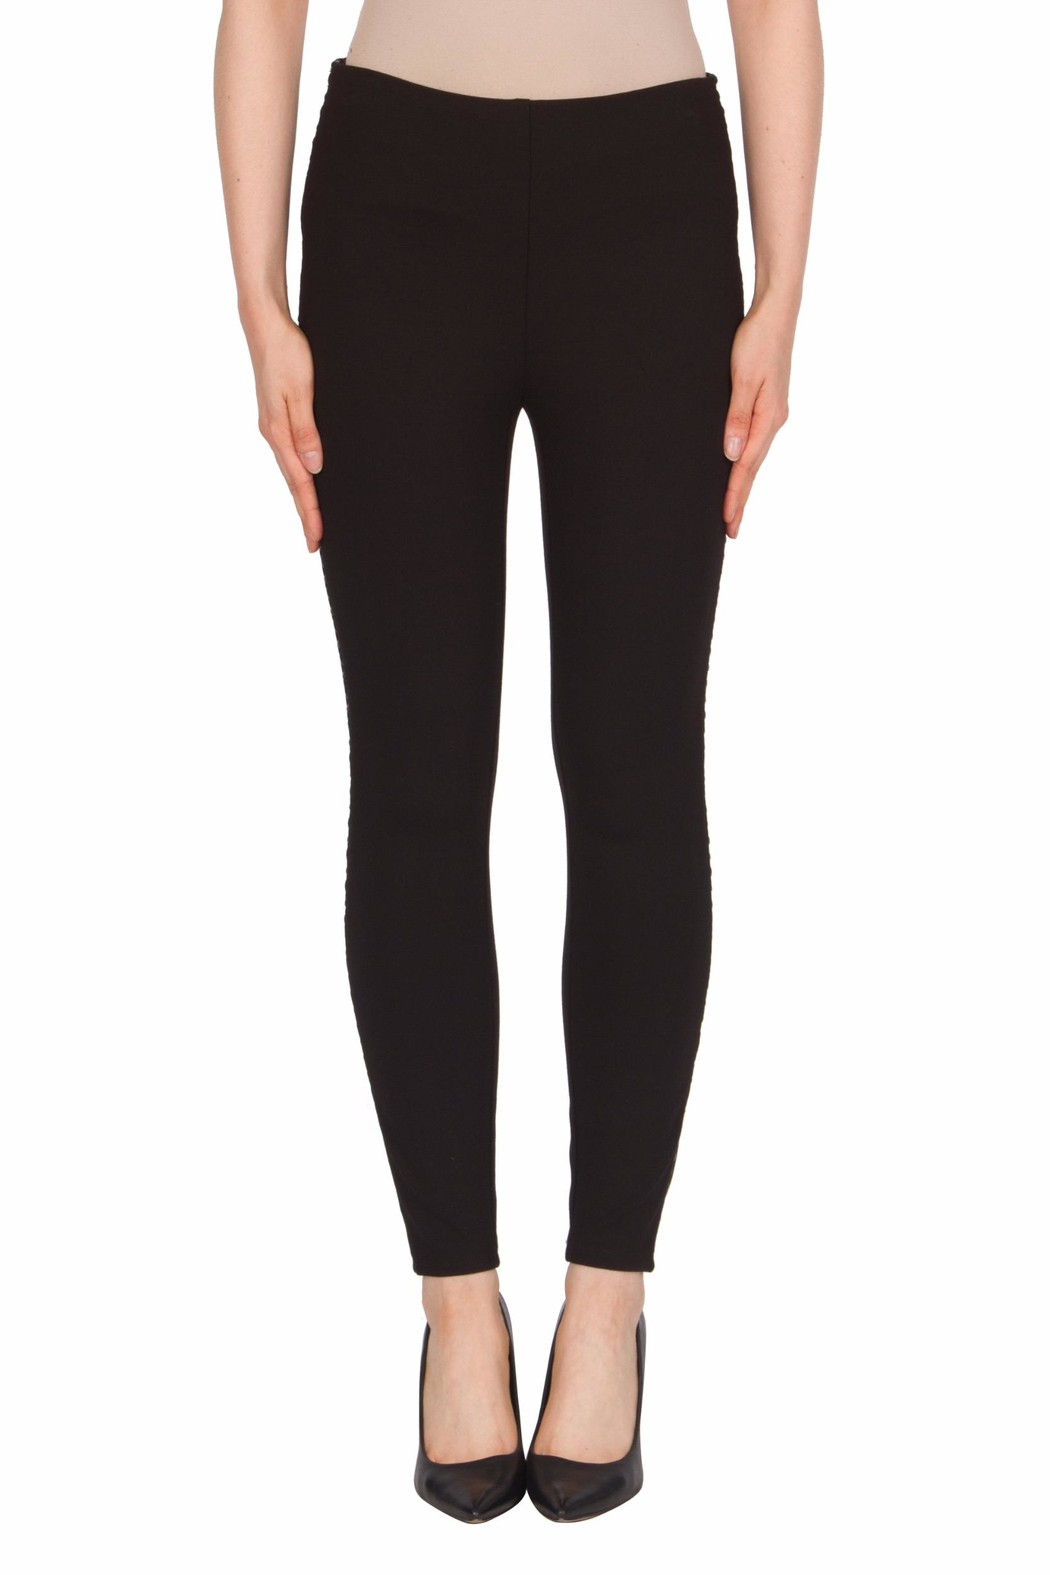 Joseph Ribkoff Faux-Leather Trimmed Pant - Main Image